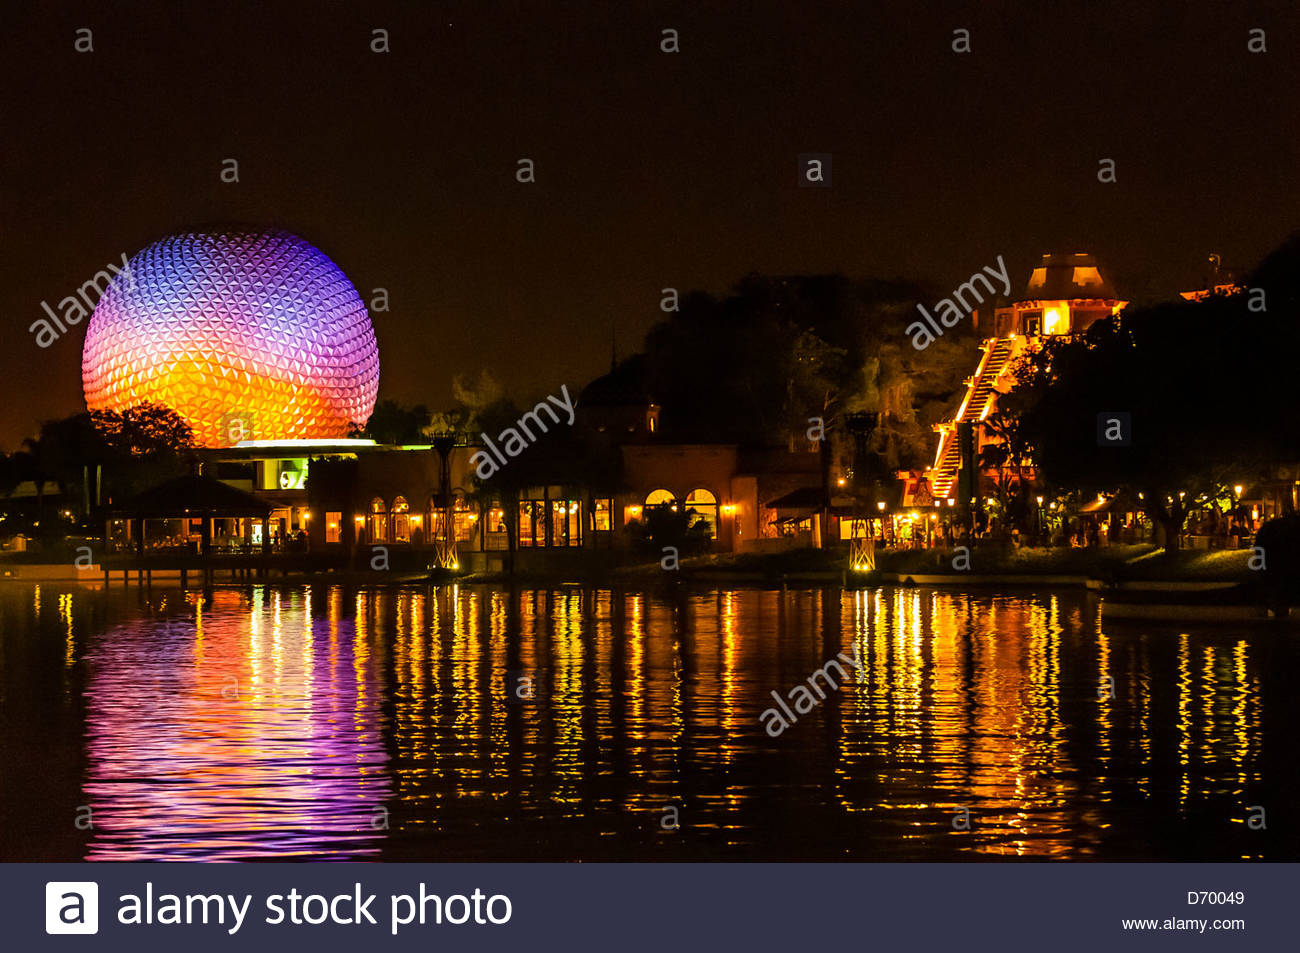 World Showcase Lagoon avec Spaceship Earth (géosphère) en arrière-plan, Epcot, Walt Disney World, Photo Stock